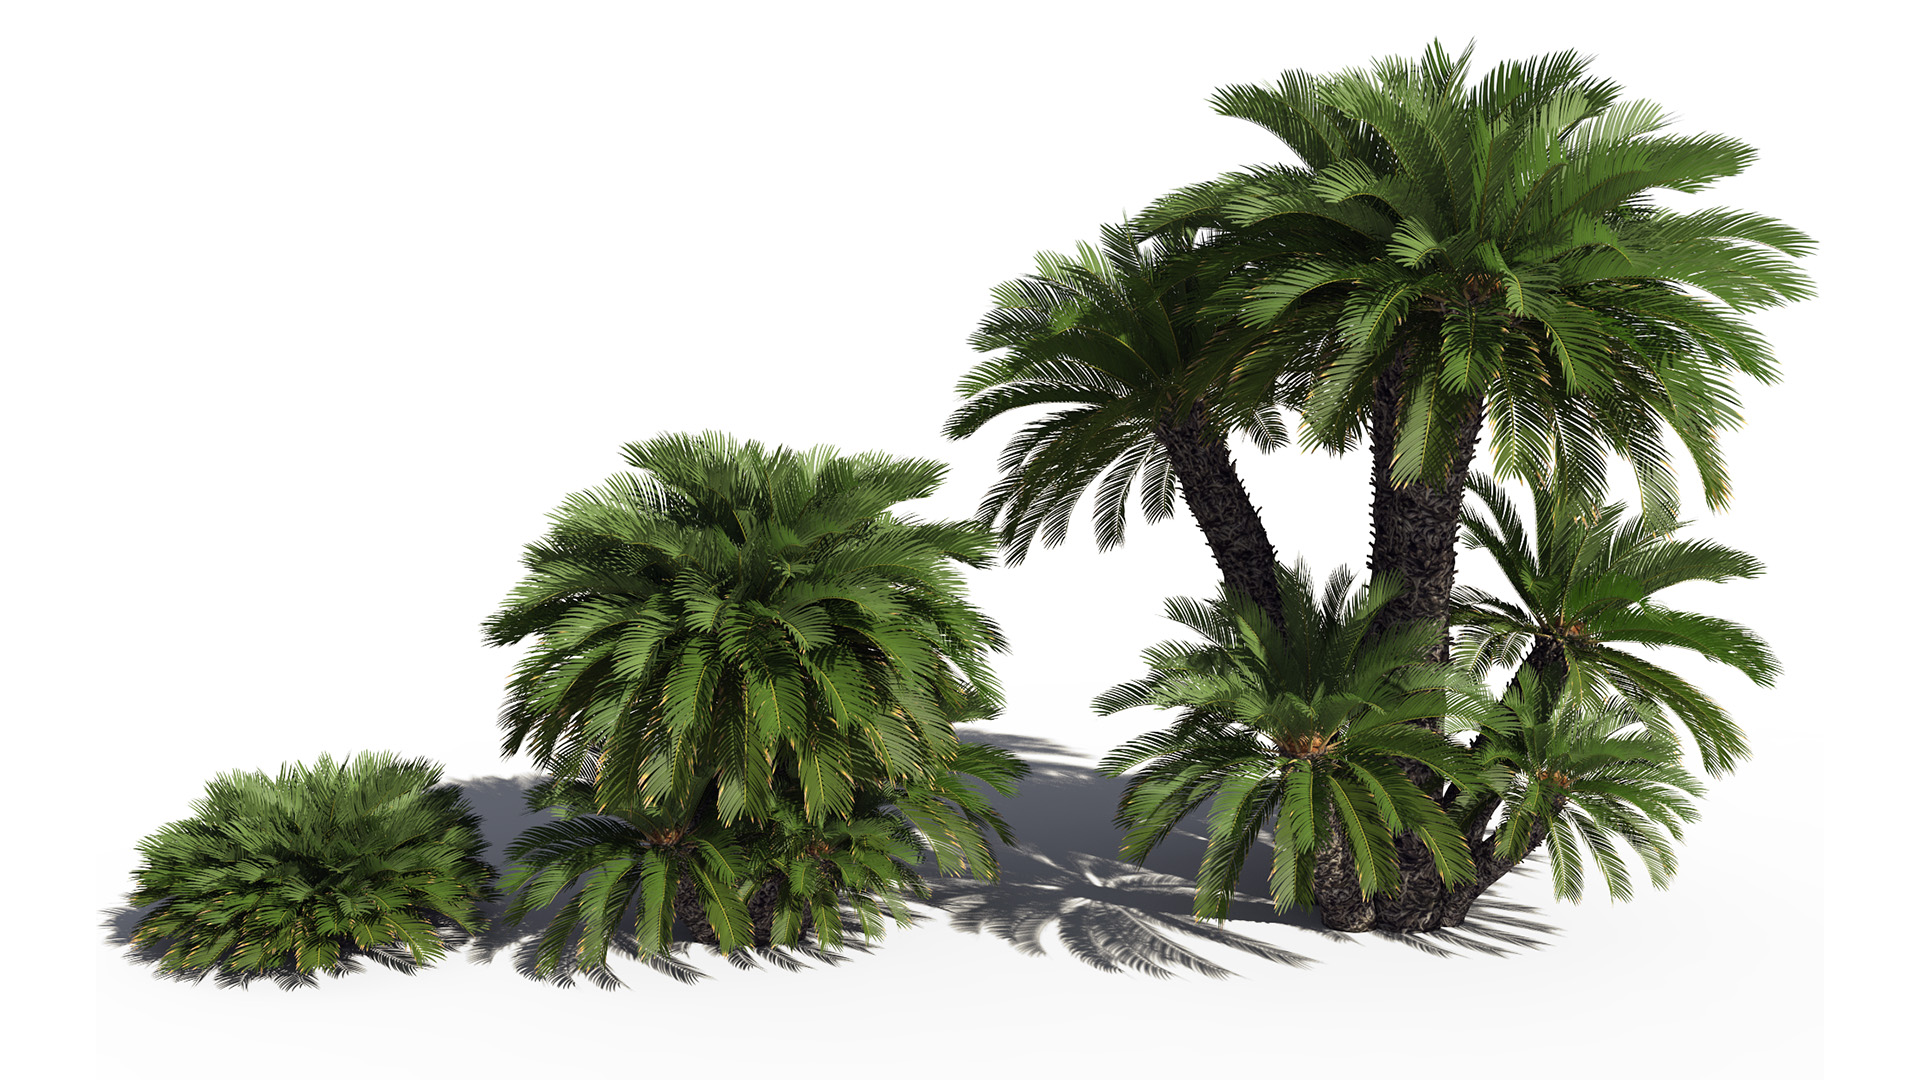 3D model of the Japanese sago palm Cycas revoluta maturity variations